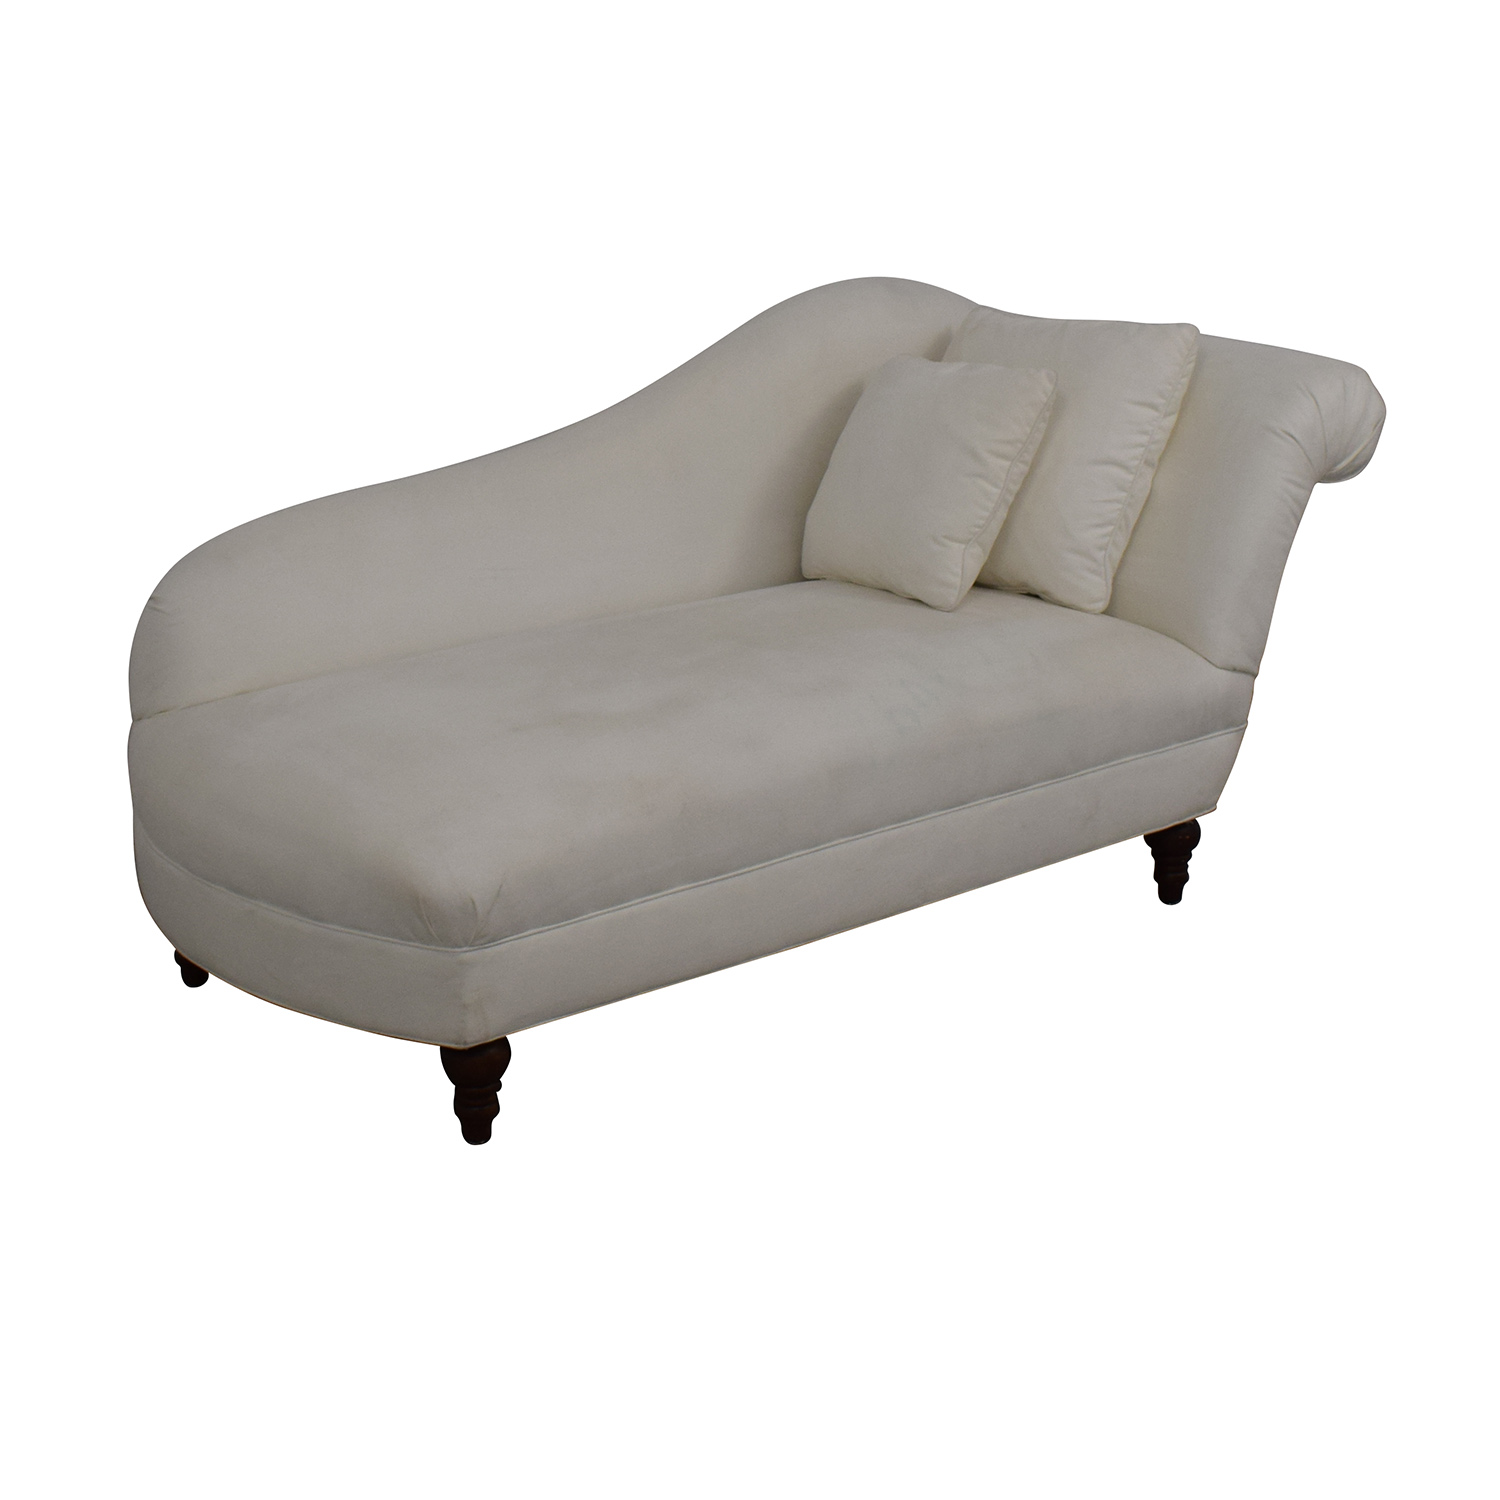 shop Fairfield Chair Company Living Room White Chaise Fairfield Chair Company Sofas